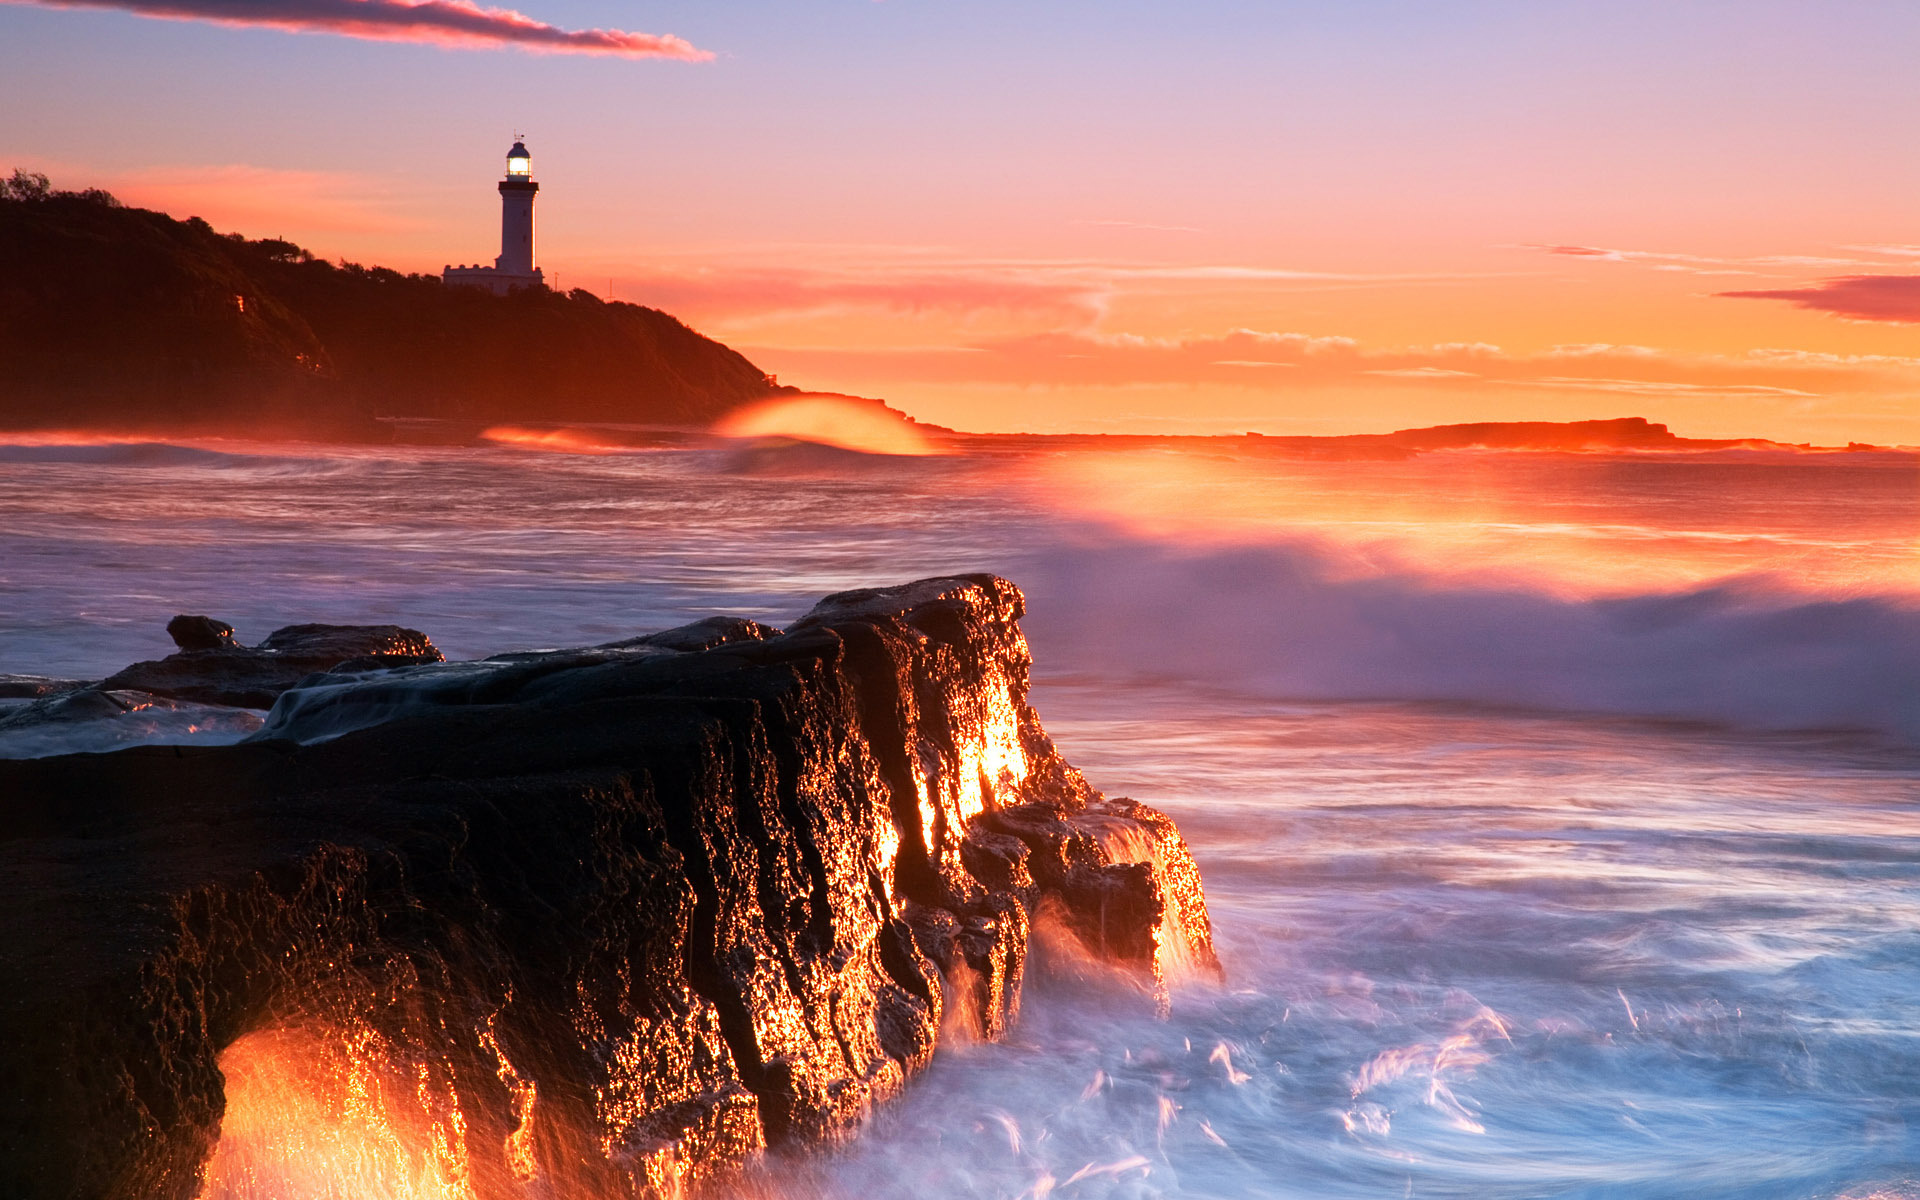 Lighthouse Sunset Wallpaper High Quality Is Cool Wallpapers